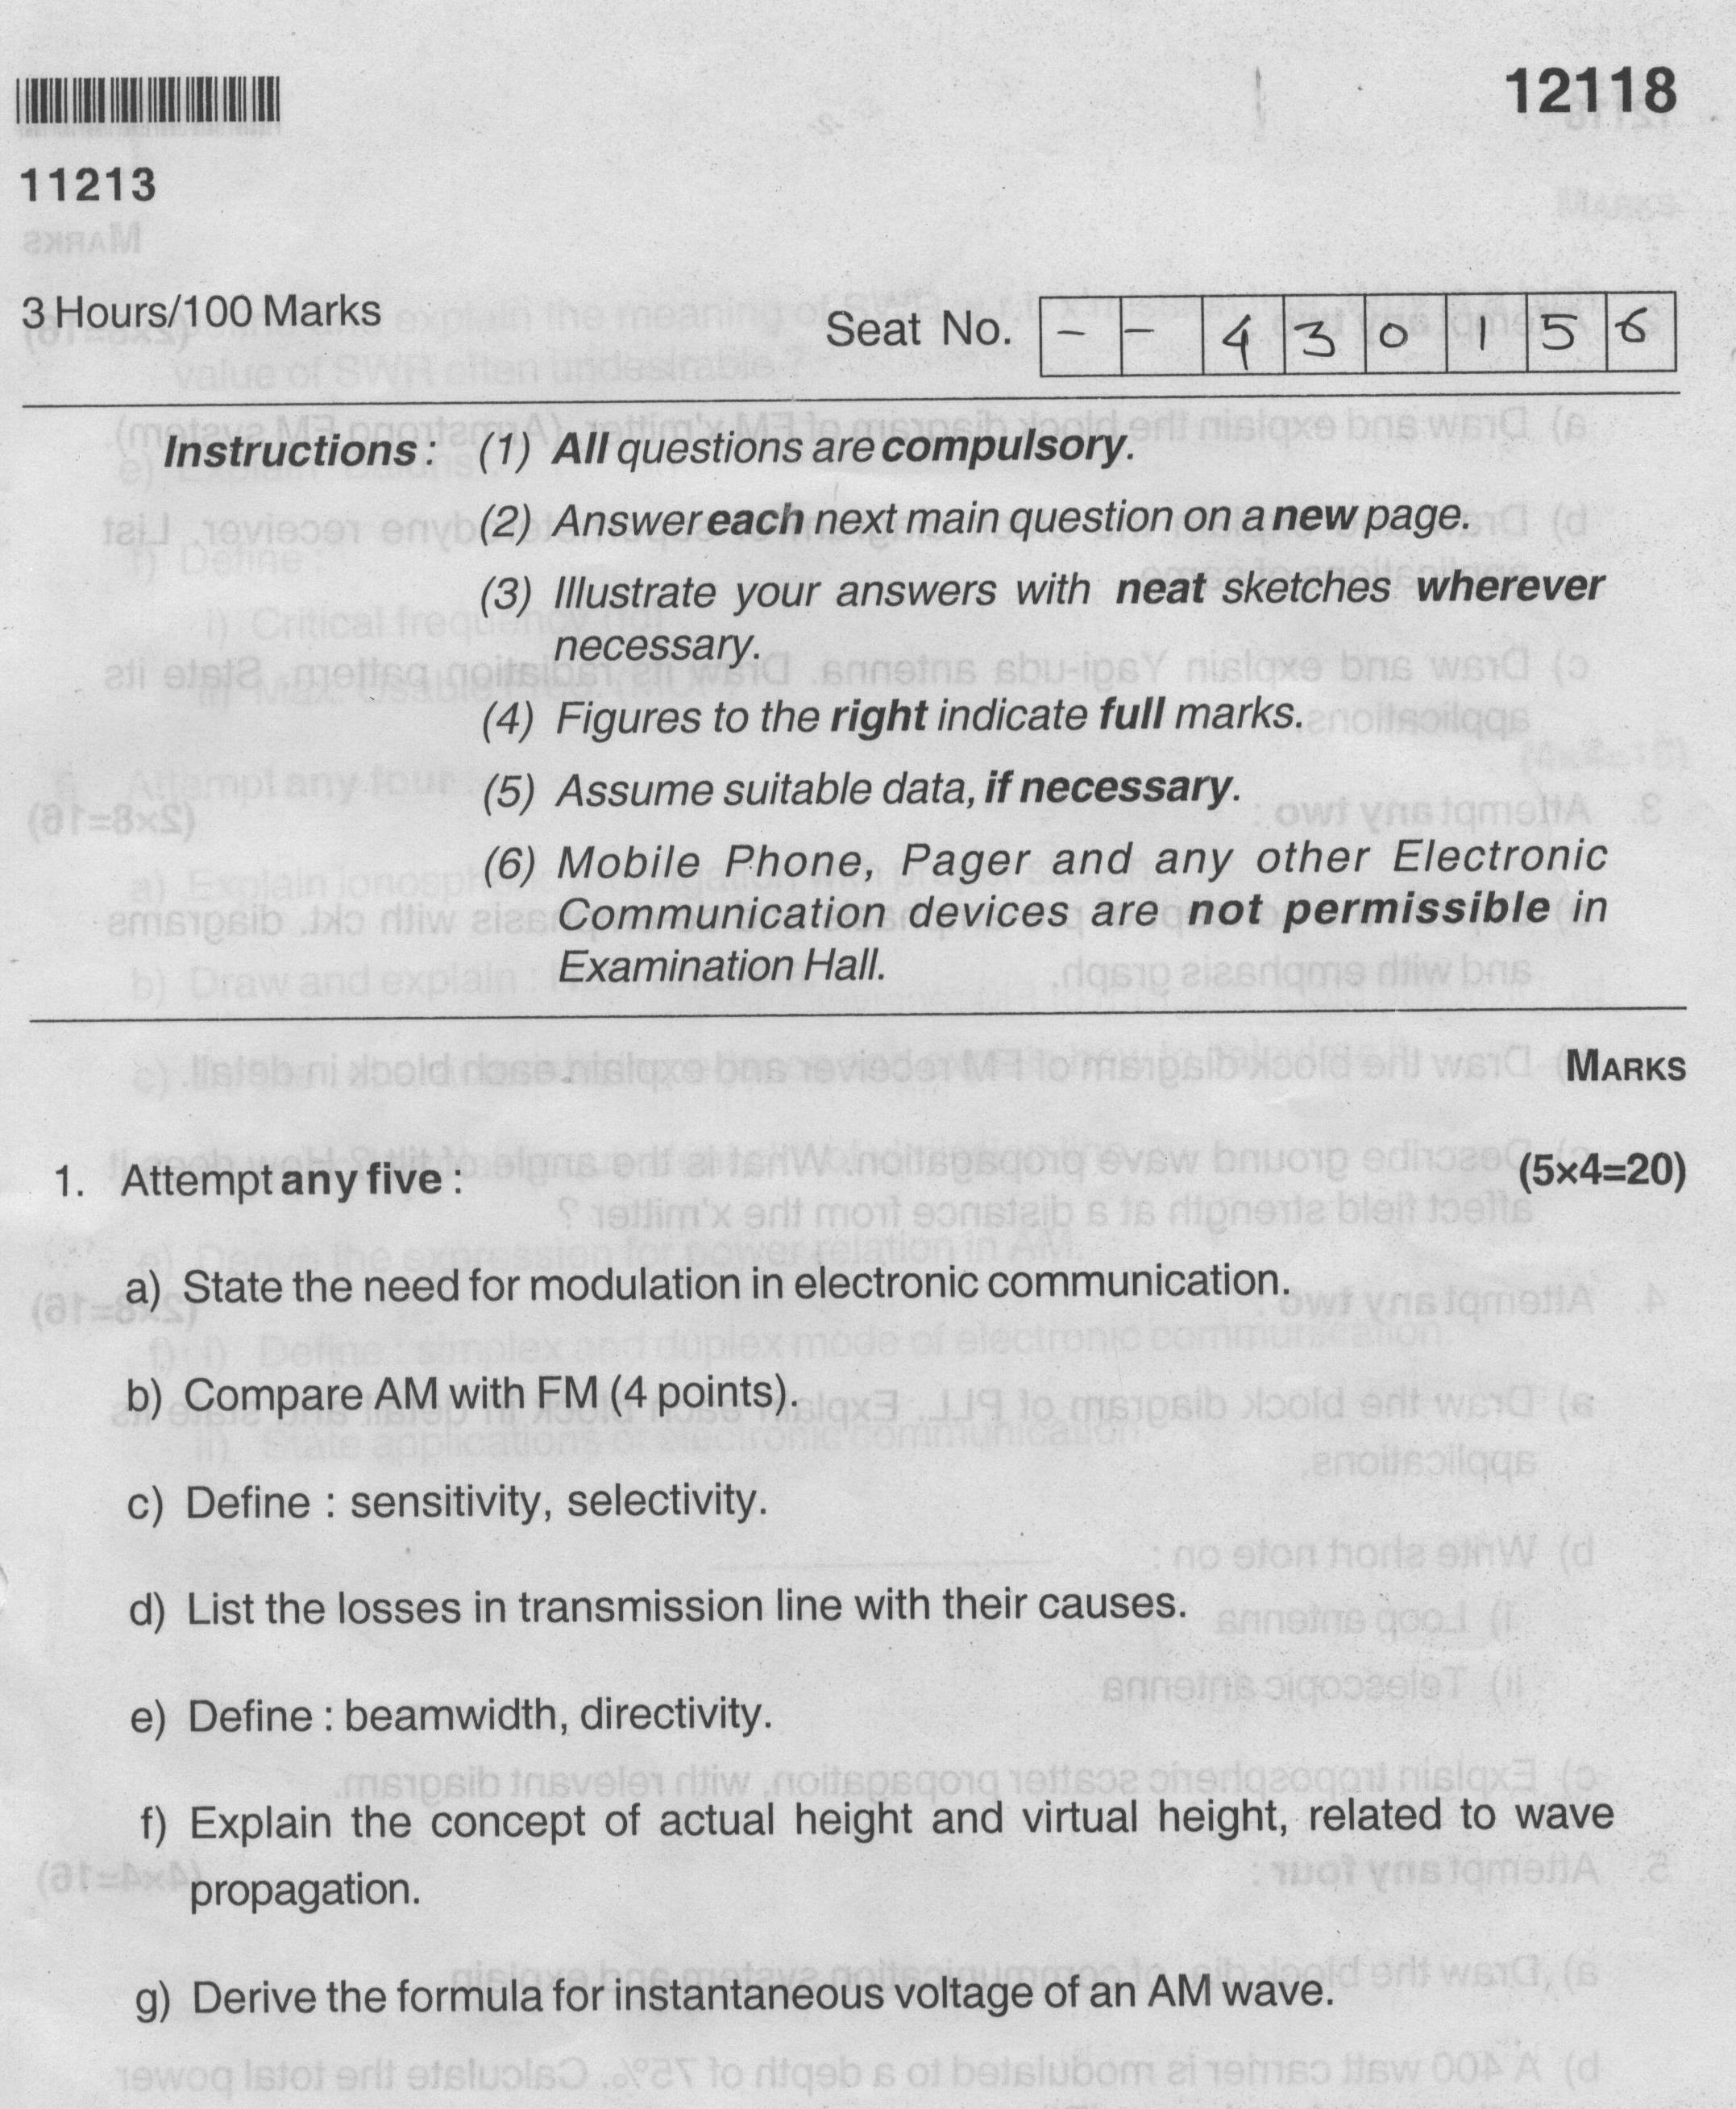 maharashtra state board of technical education general msbte  msbte question paper for diploma in electronics and telecommunication engineering group fourth semester subject analog communication 12031